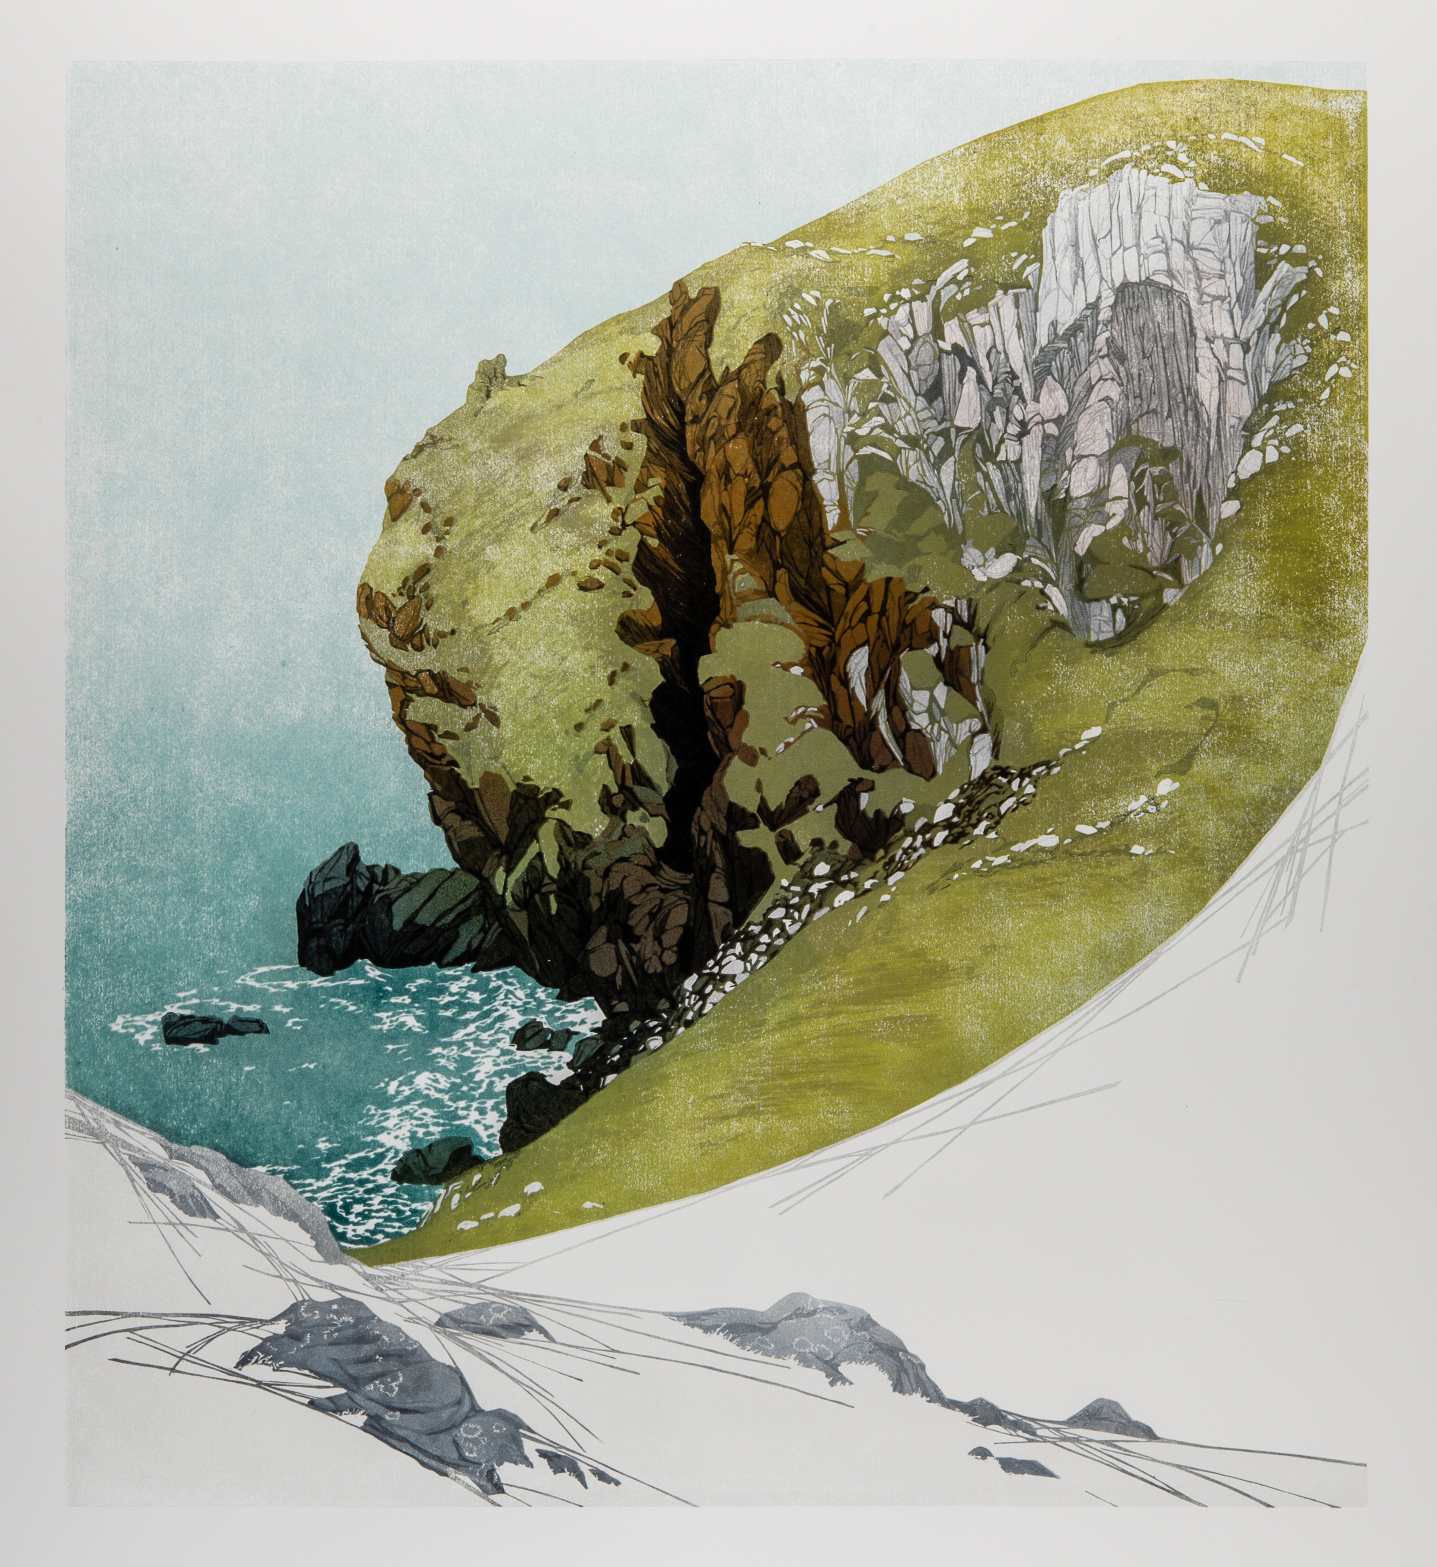 Laura Boswell. Divided Cliff, St Abbs Head (Linocut - 540 x 600 mm